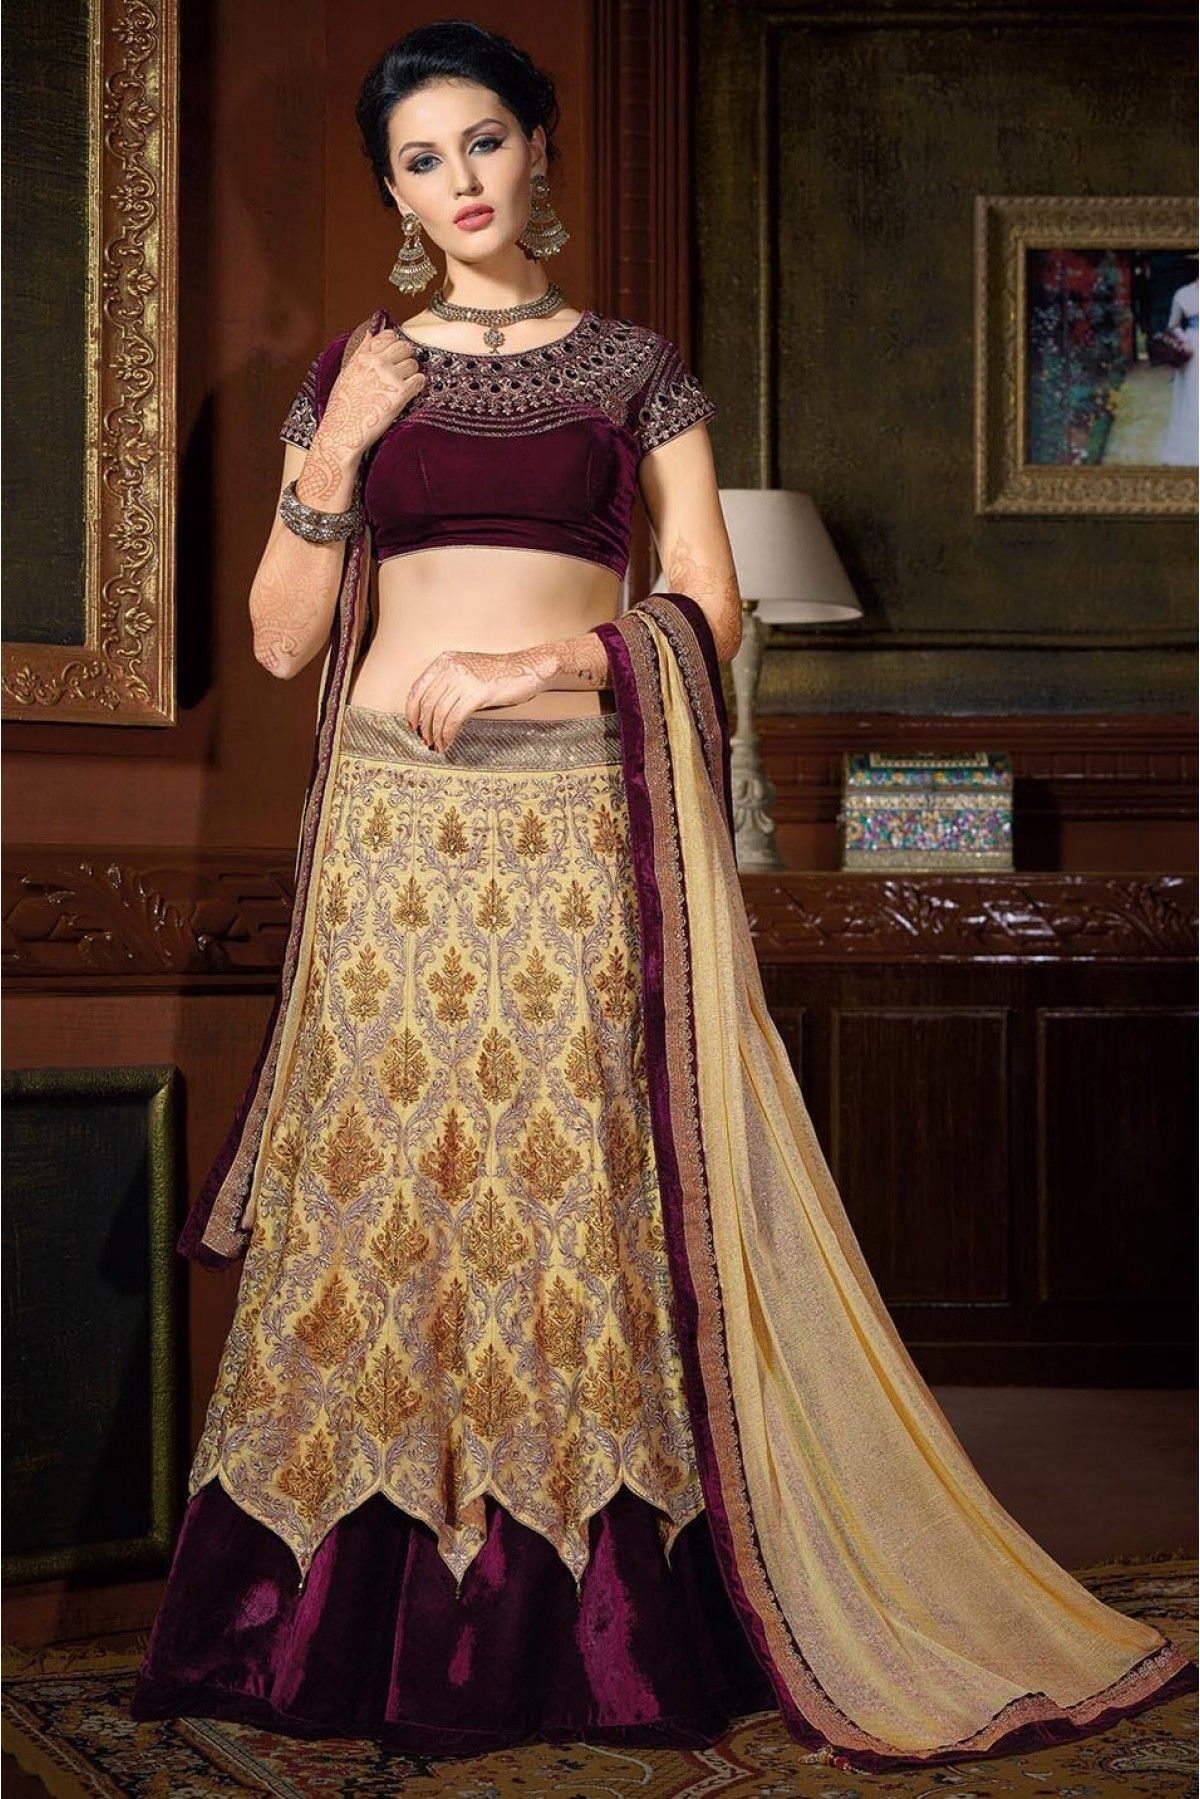 5a424d4eb2 Net Designer Lehenga Choli in Cream ColourIt Comes with matching Dupatta  and Choli.It is crafted with Embroidery,Lace Work,Patch Work.